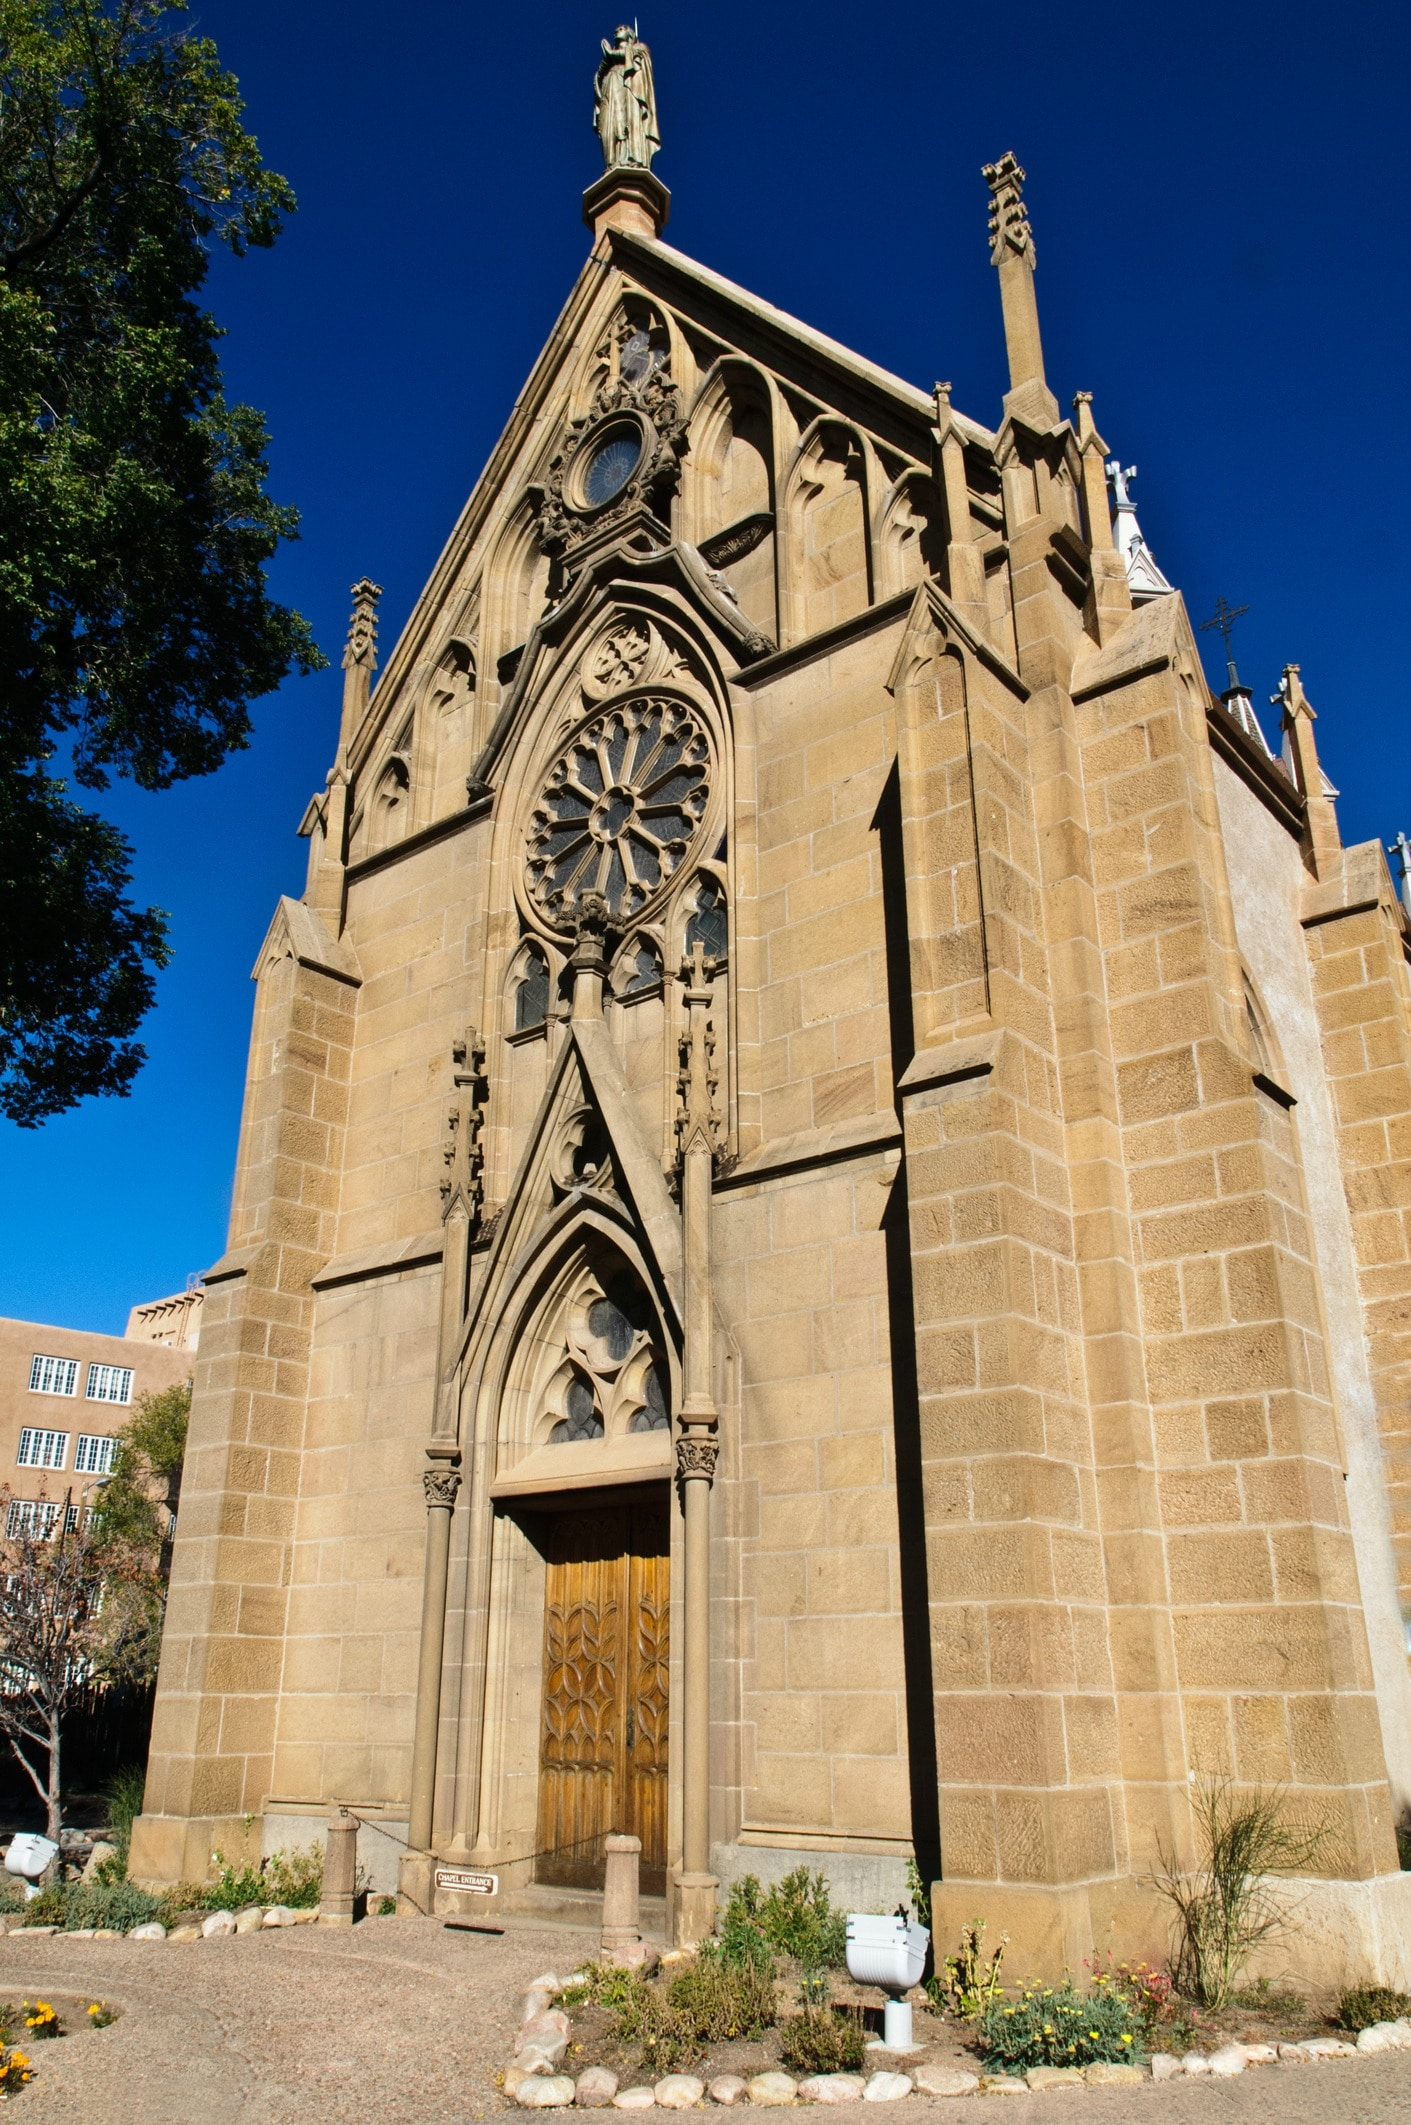 Old Town Santa Fe >> What You Need to Know About the Loretto Chapel in Santa Fe ...